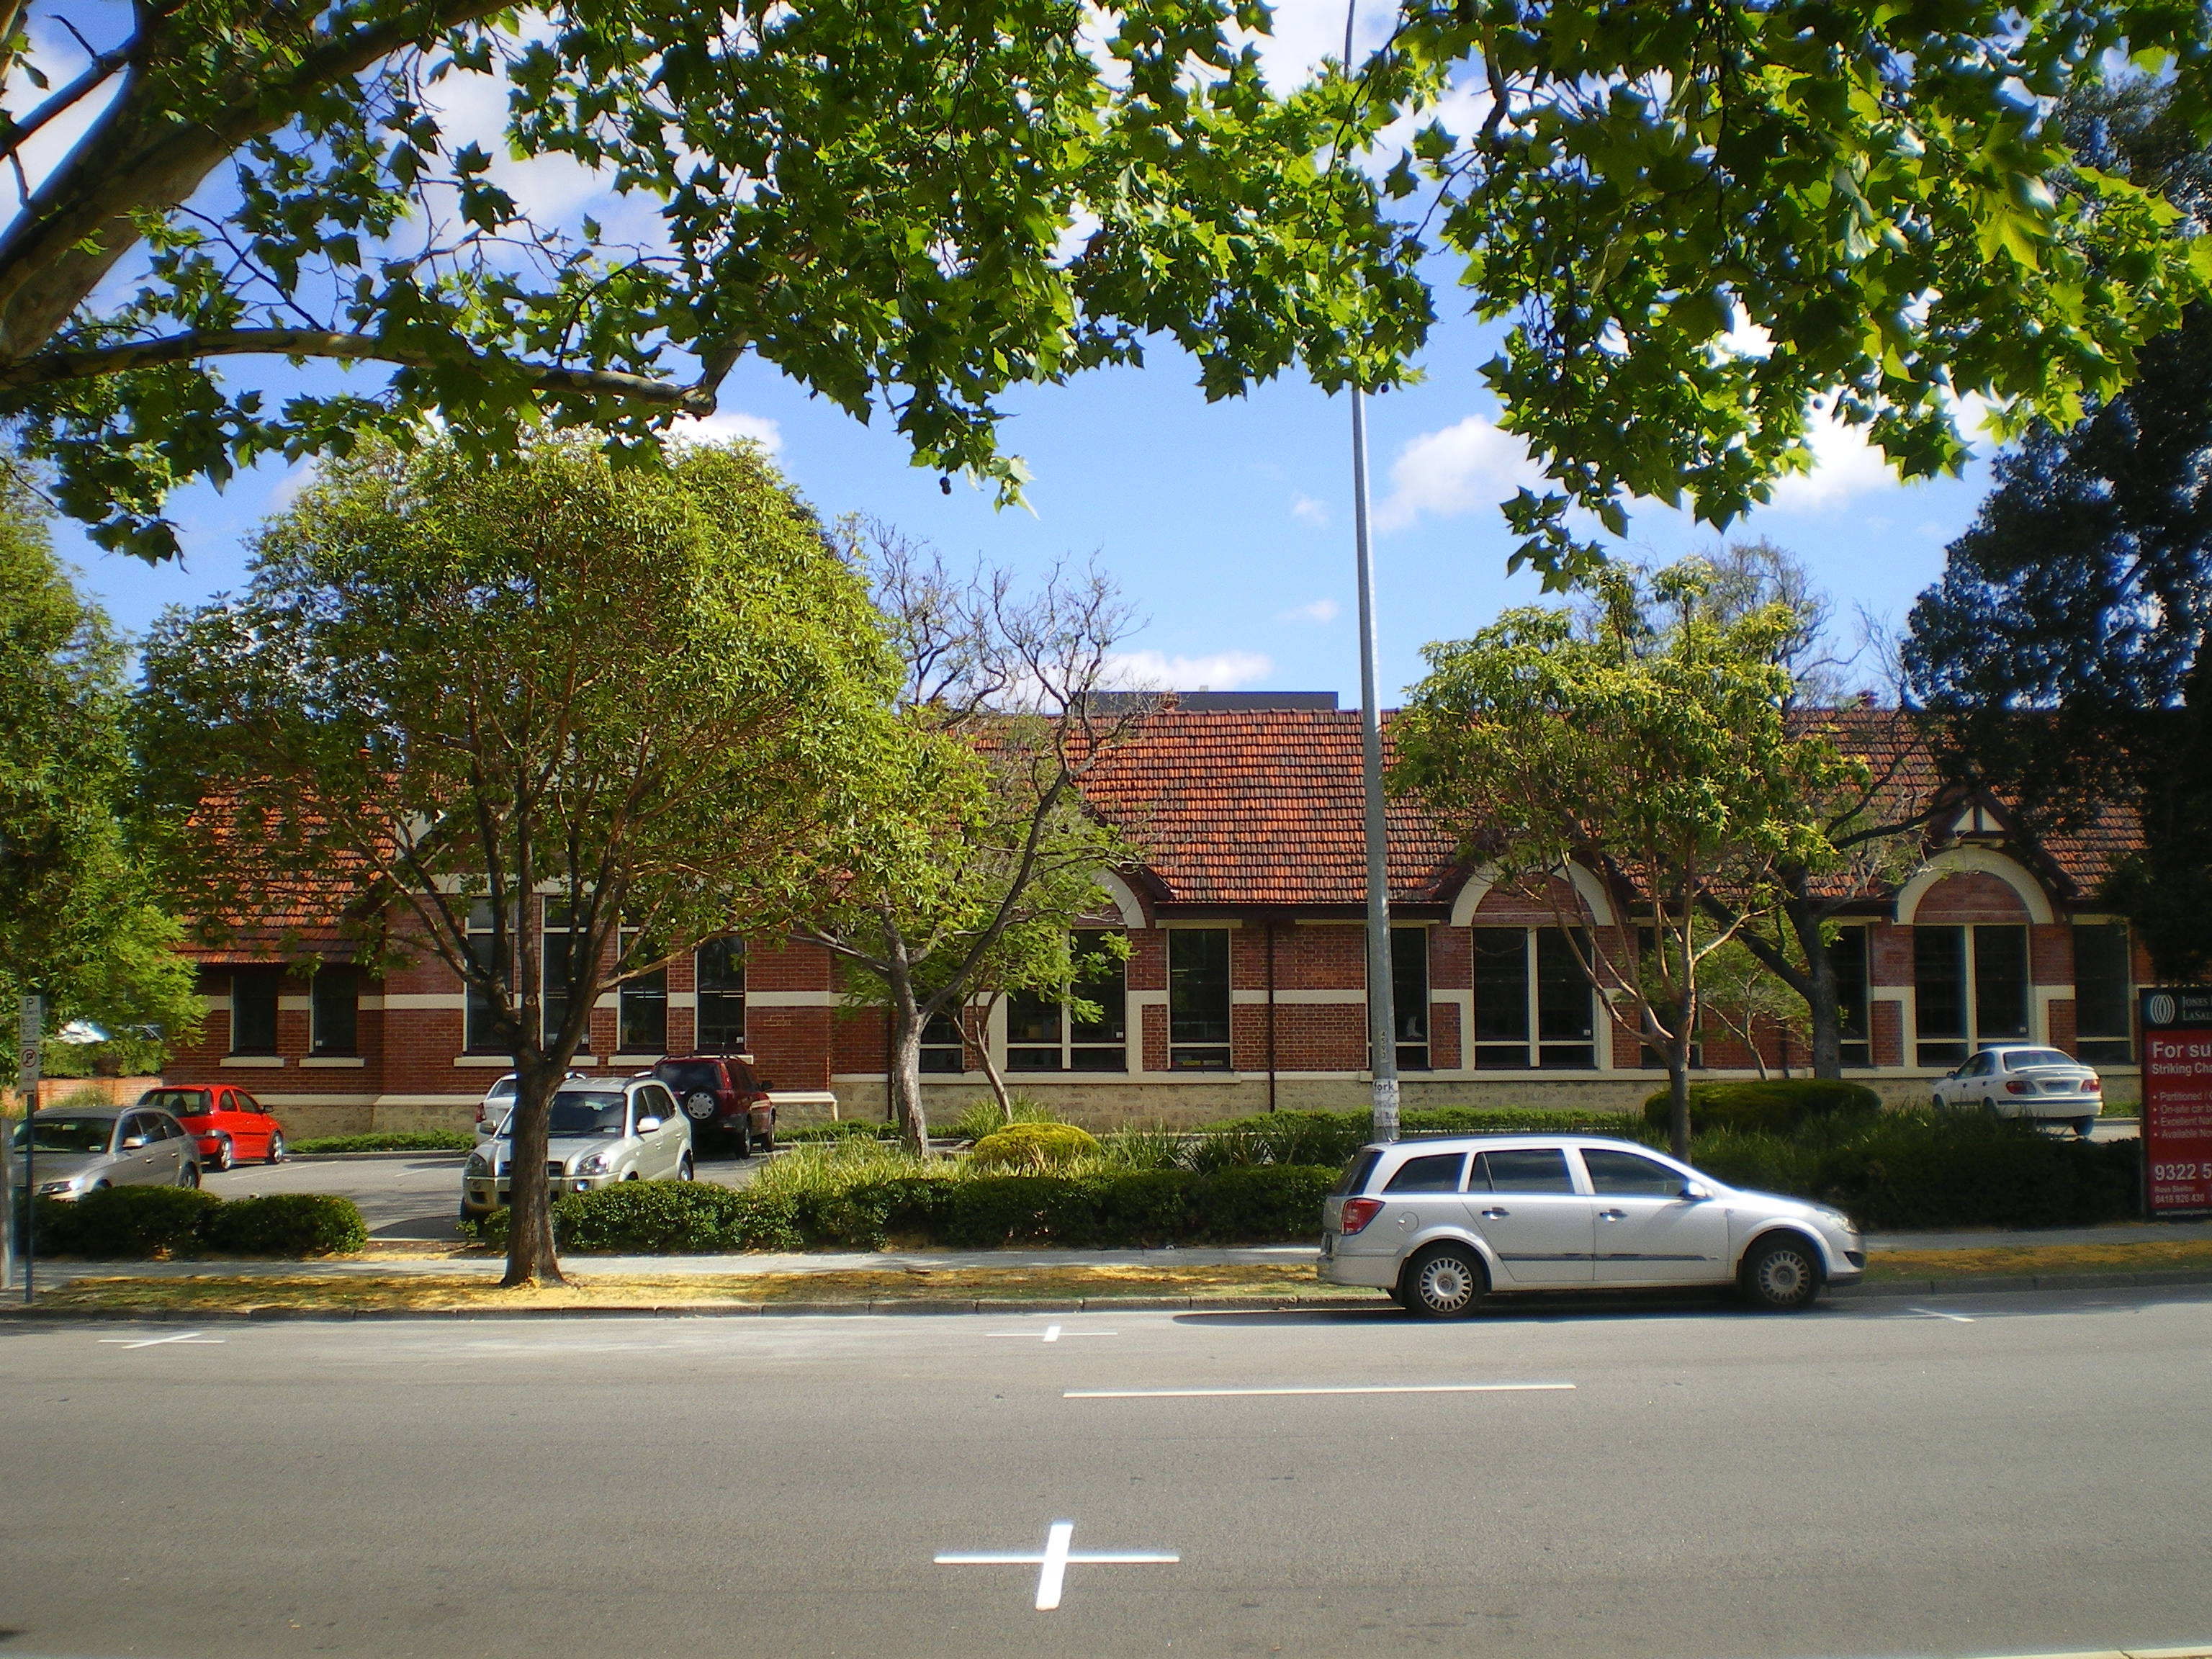 Front view from adjacent park